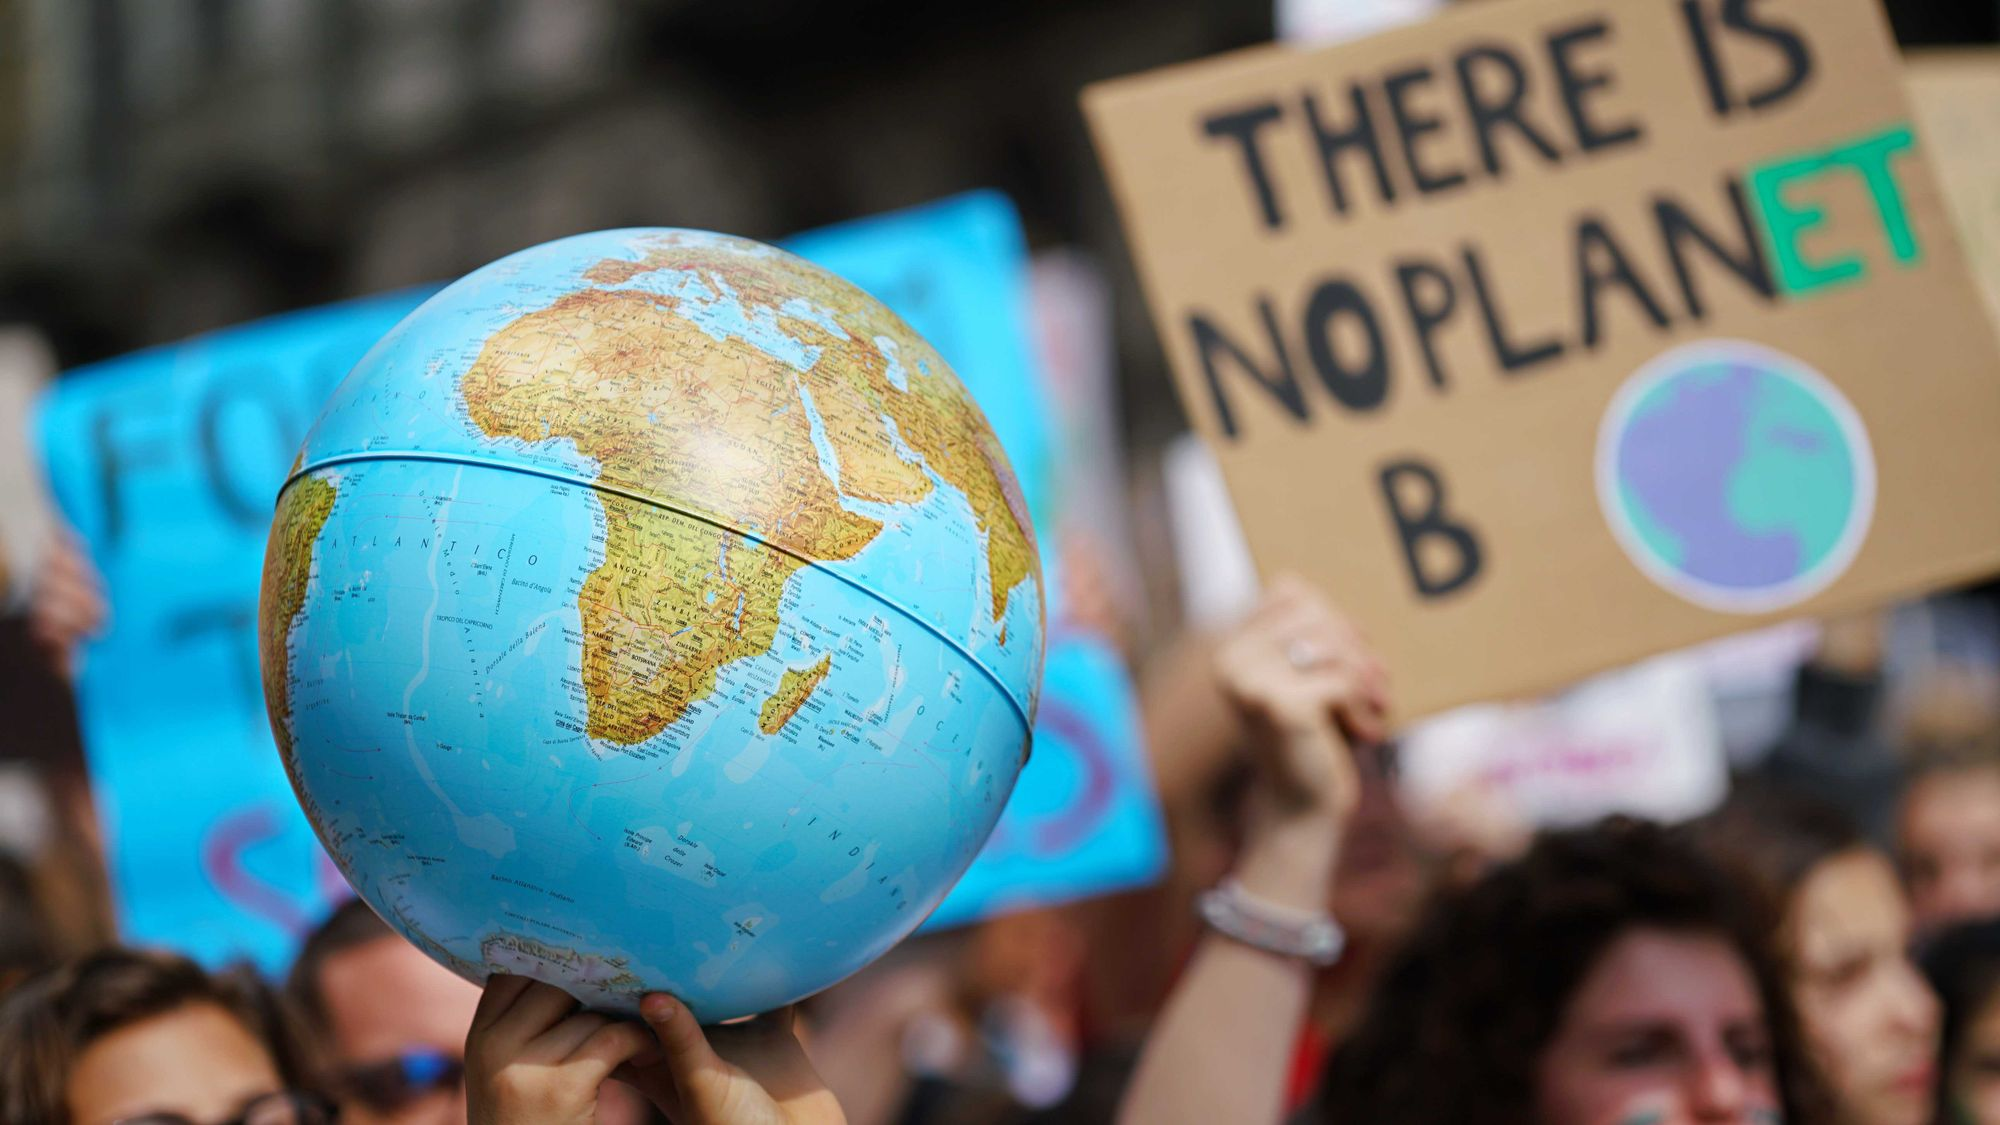 Is democracy too slow to achieve climate justice?